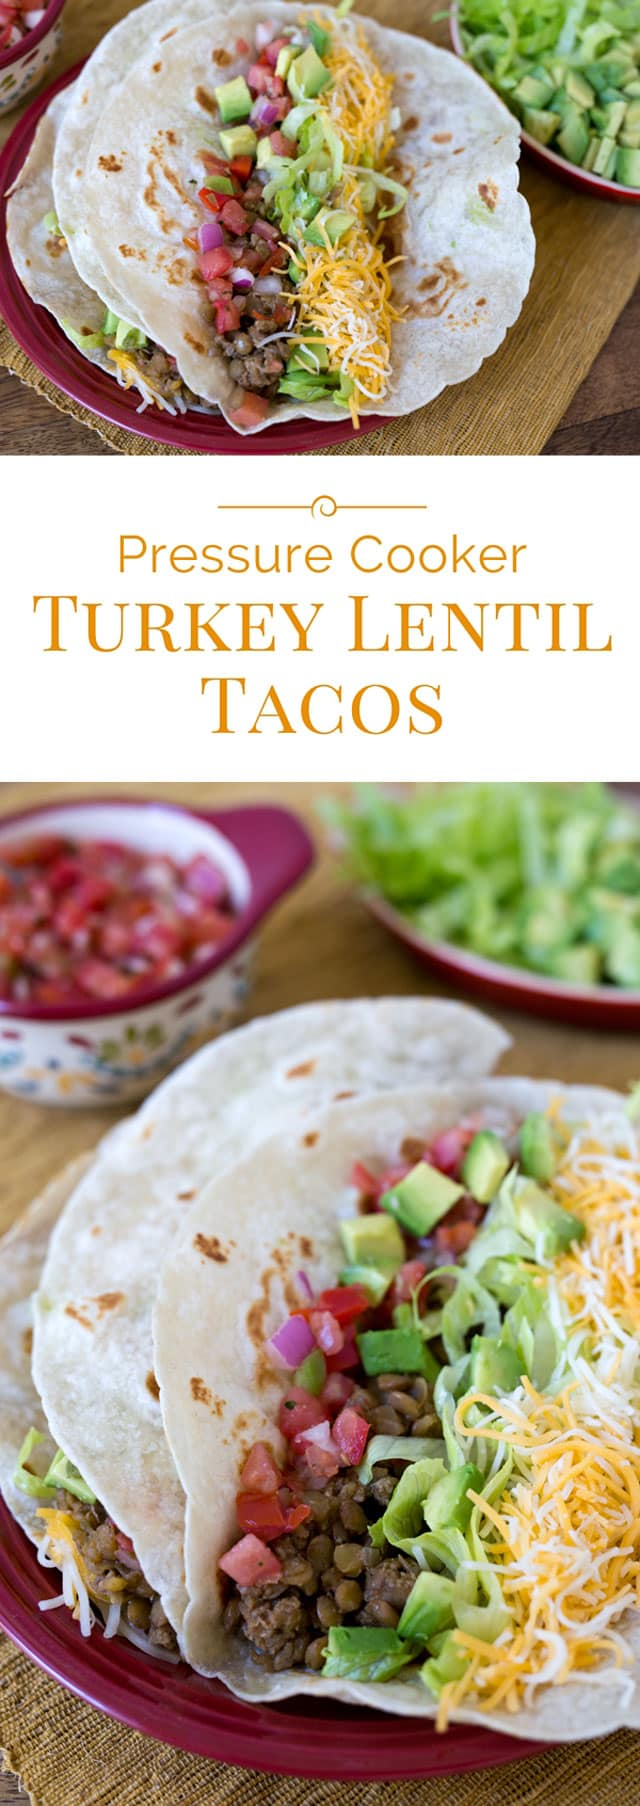 Taco filling made with lentils, lean ground turkey, onions, garlic, and a blend of Mexican spices. Makes a big batch in your Insta Pot. This Instant Pot recipe for Pressure Cooker Turkey Lentil Taco Filling is the perfect dinner solution for Taco Tuesday. A freezer friendly recipe! #instantpot #pressurecooking #tacos #freezerfriendly #mealprep via @PressureCook2da